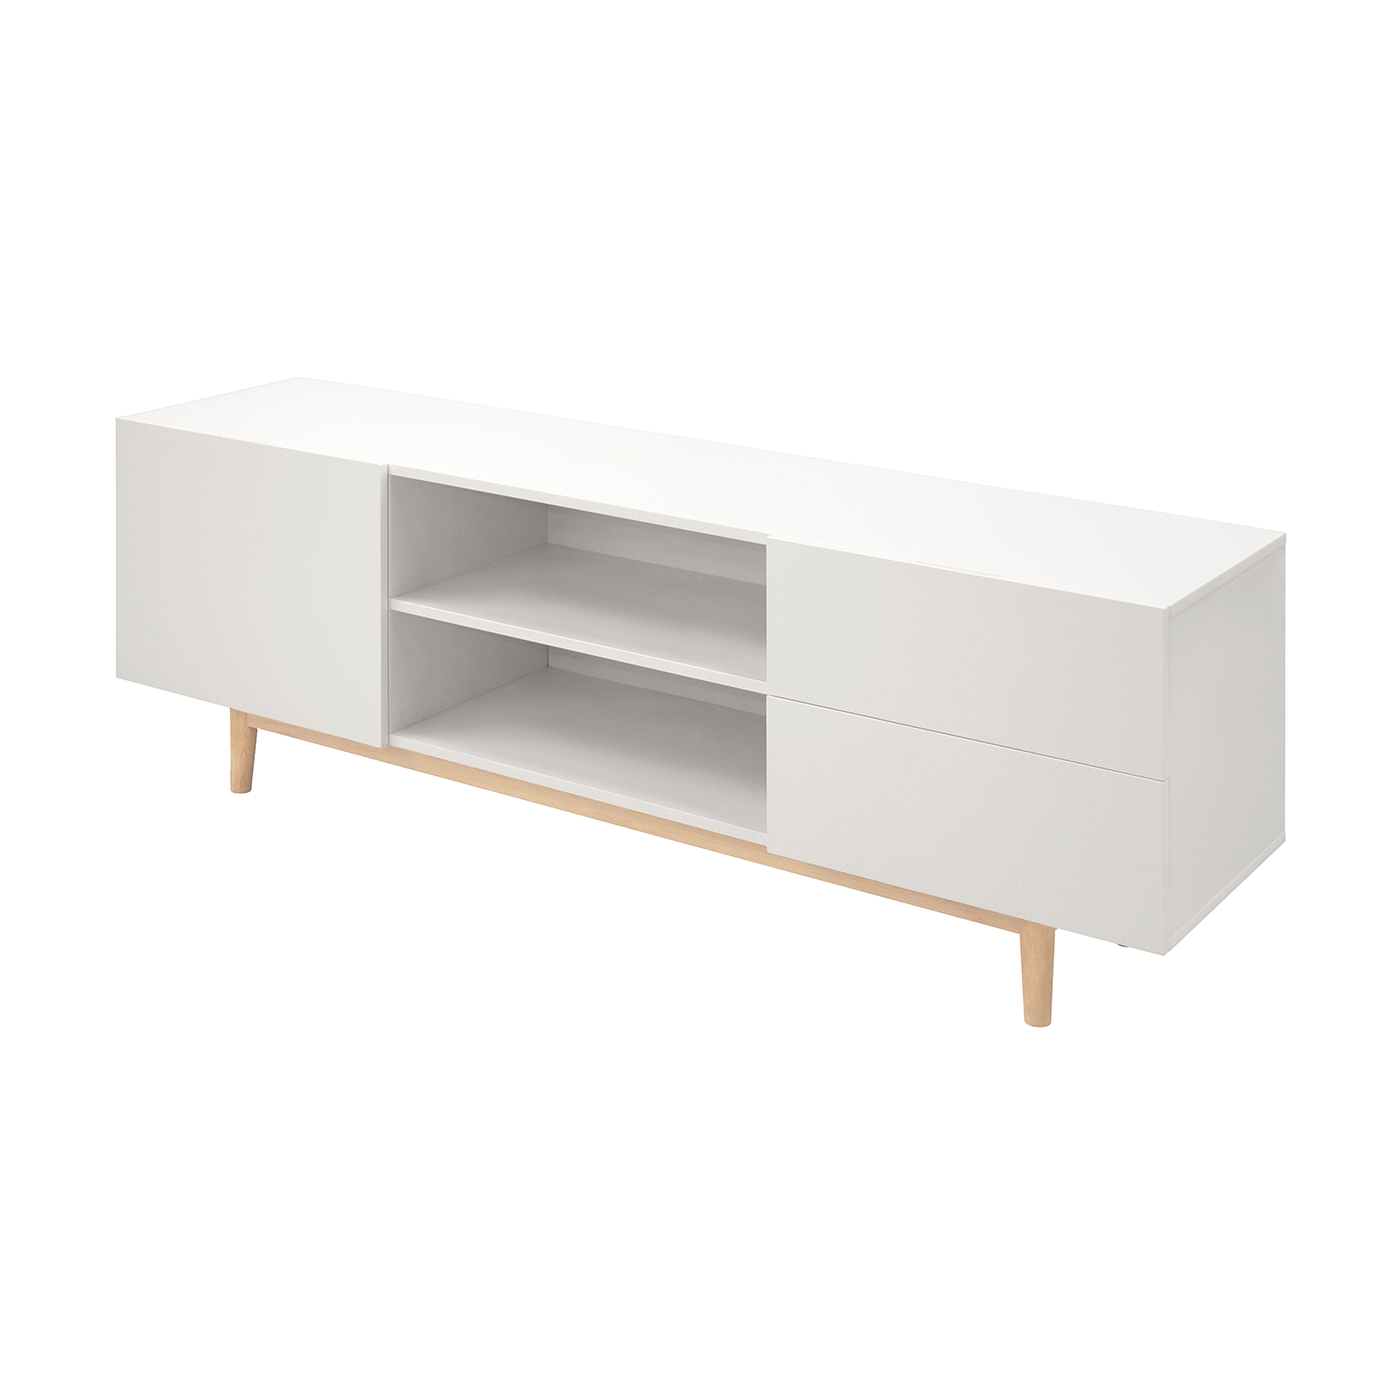 Tv Kast Jasmijn Wit.Lisomme Scandinavisch Tv Meubel Roos 160 Cm Wit